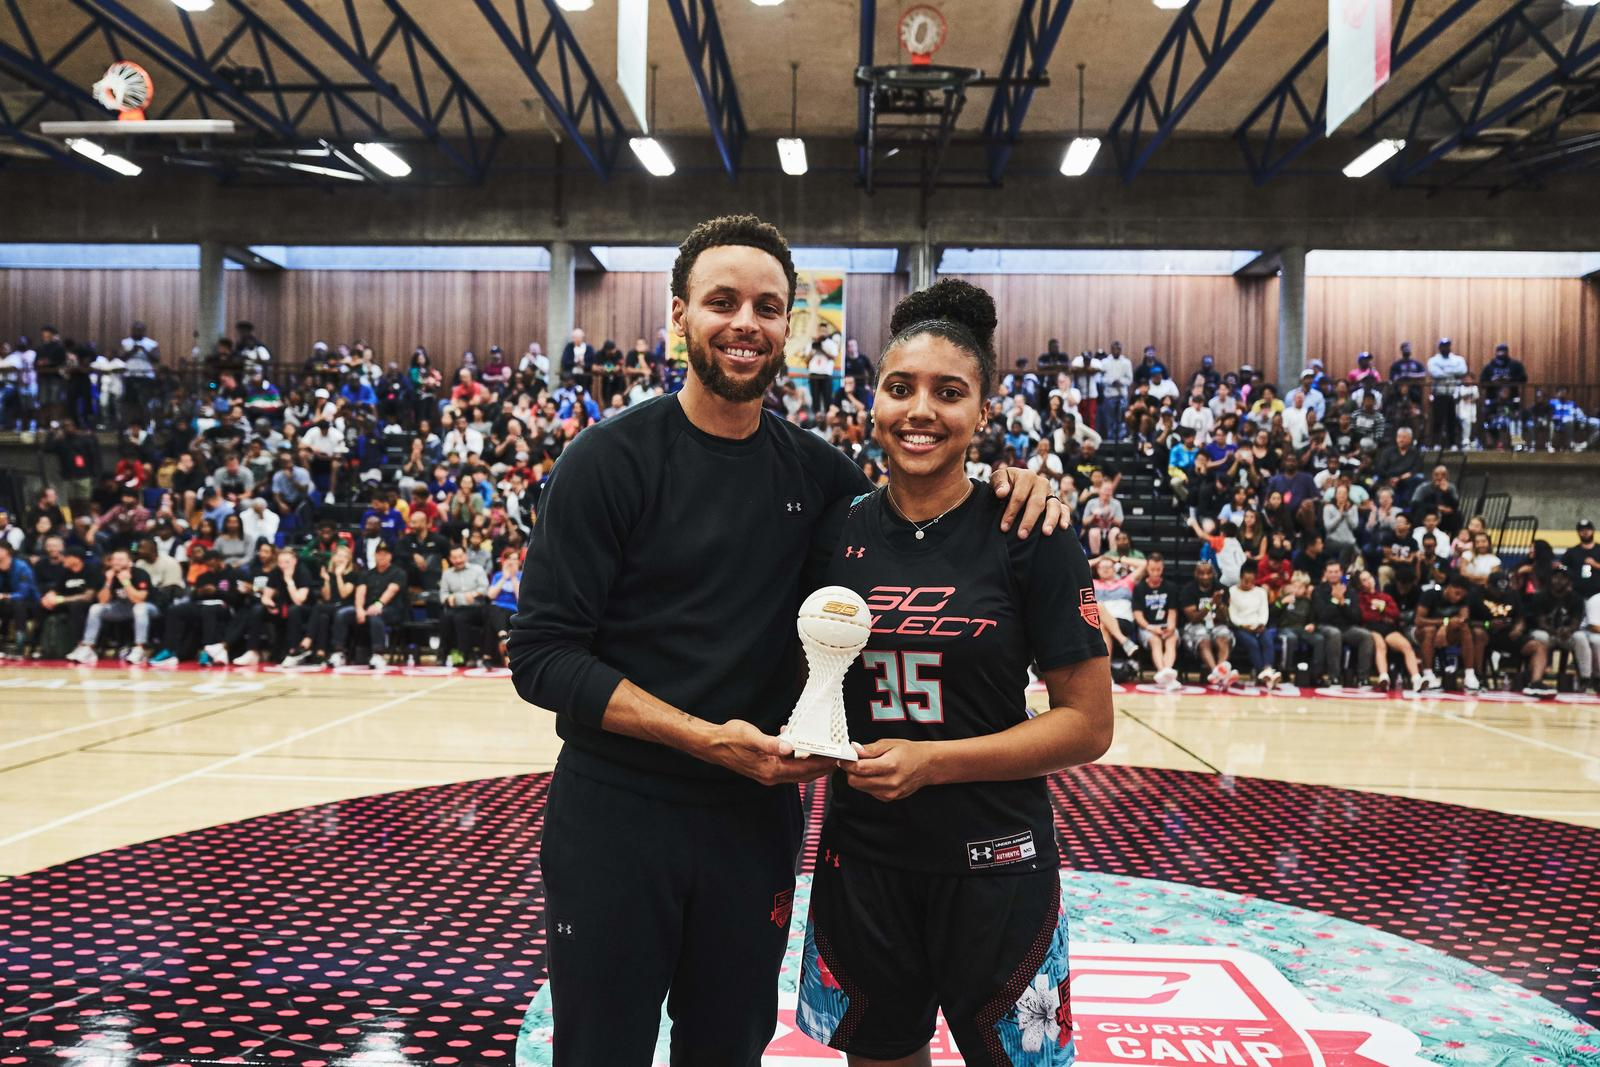 Azzi Fudd won the 3-point contest for the second straight year, drowning 20buckets in the opening round and 15 in the final round, edging out Zeb Jackson's 14 head-to-head.